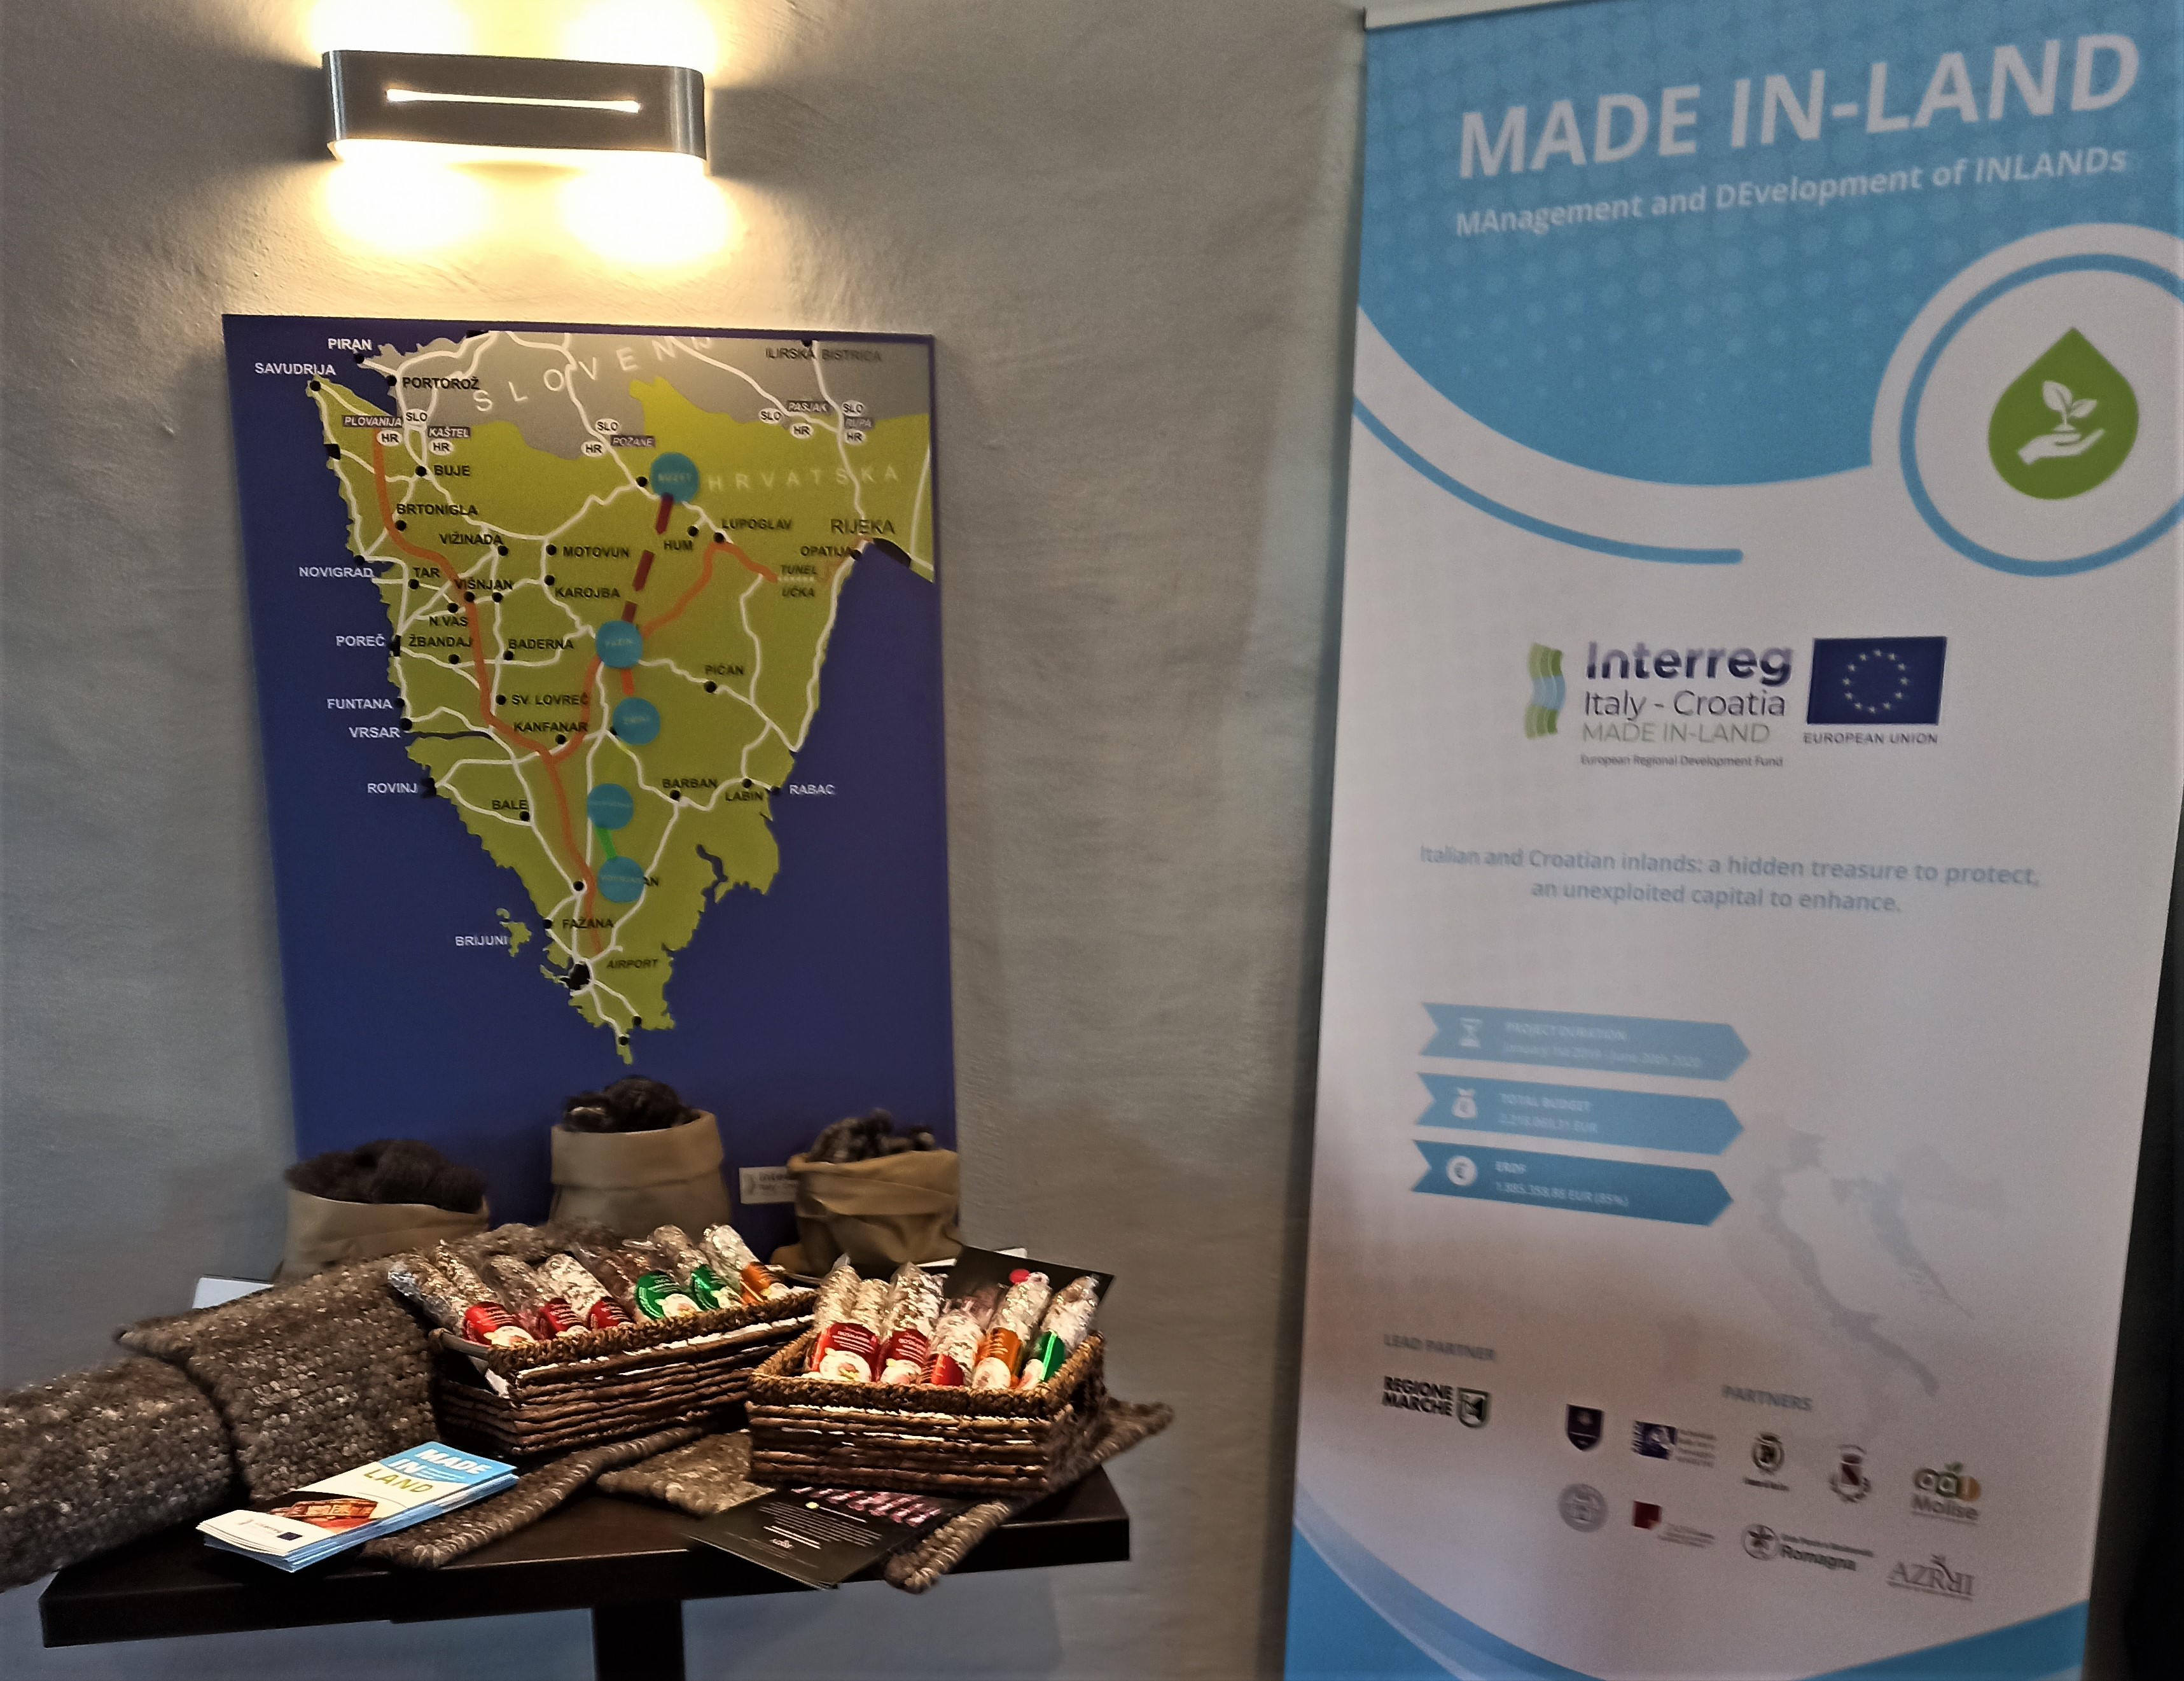 MADE IN-LAND Regional event in Istria